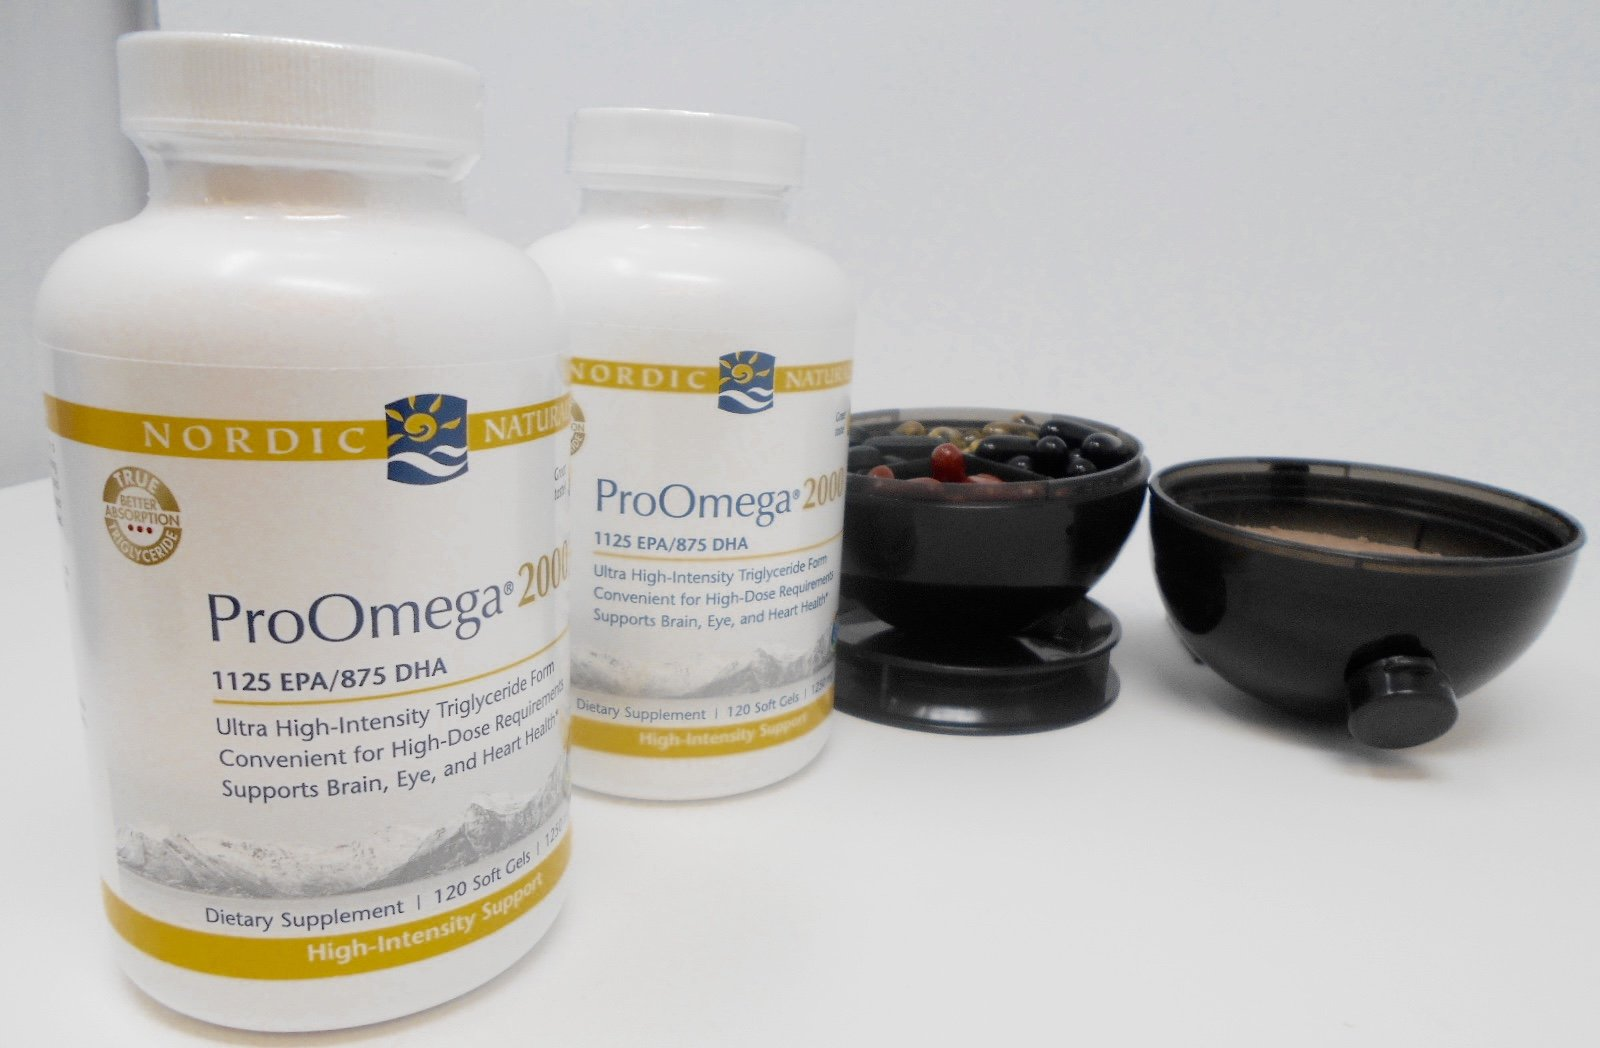 Nordic Naturals ProOmega 2000 Lemon 120 Soft Gels (2-Pack)Viita Ball Bundle